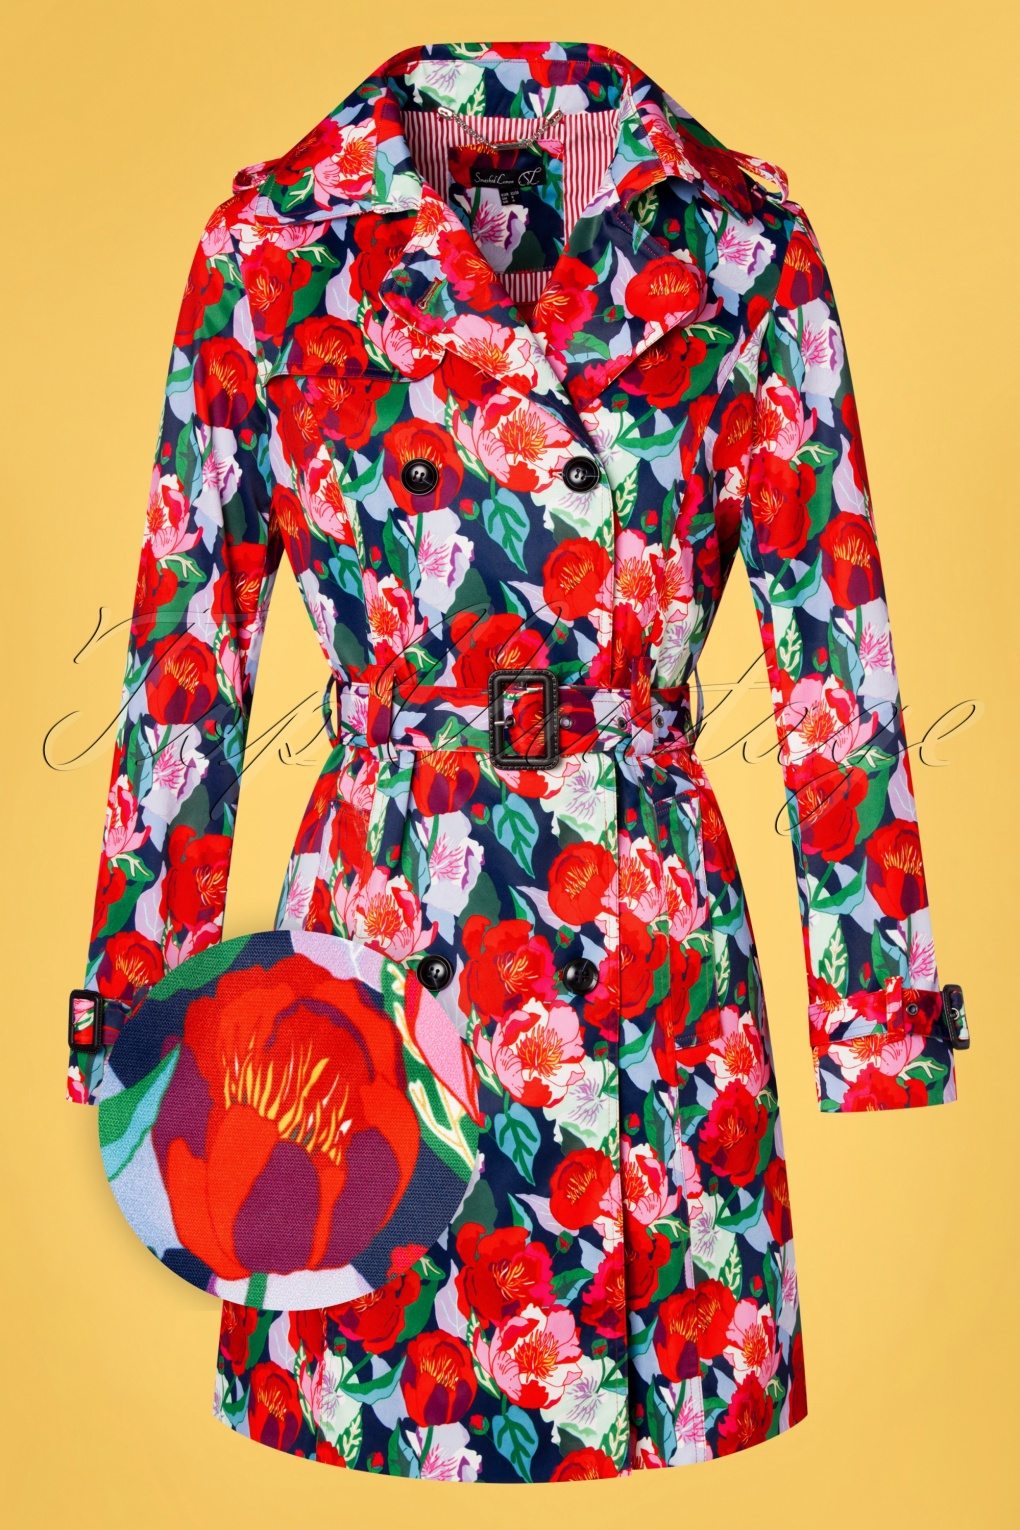 Vintage Coats & Jackets | Retro Coats and Jackets 60s Floral Fun Trench Coat in Multi £117.70 AT vintagedancer.com